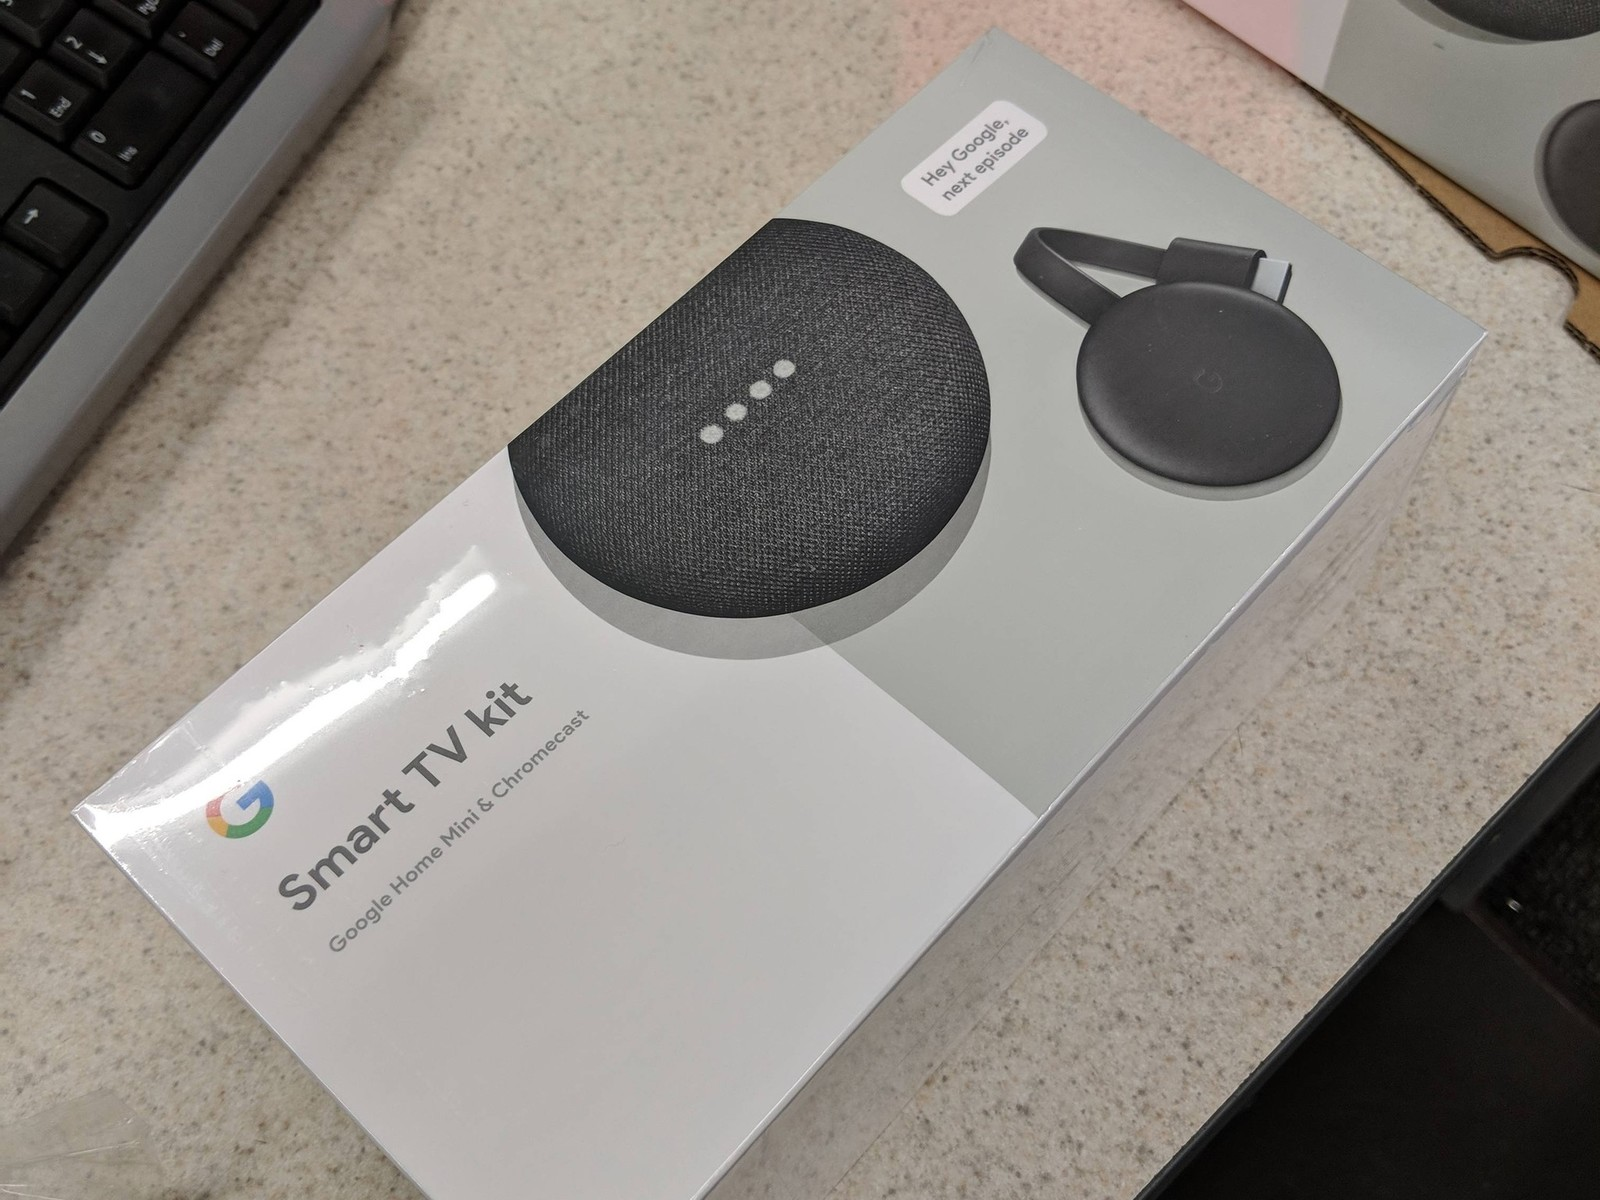 Smart TV kit featuring Google Home Mini and third-gen Chromecast leaks